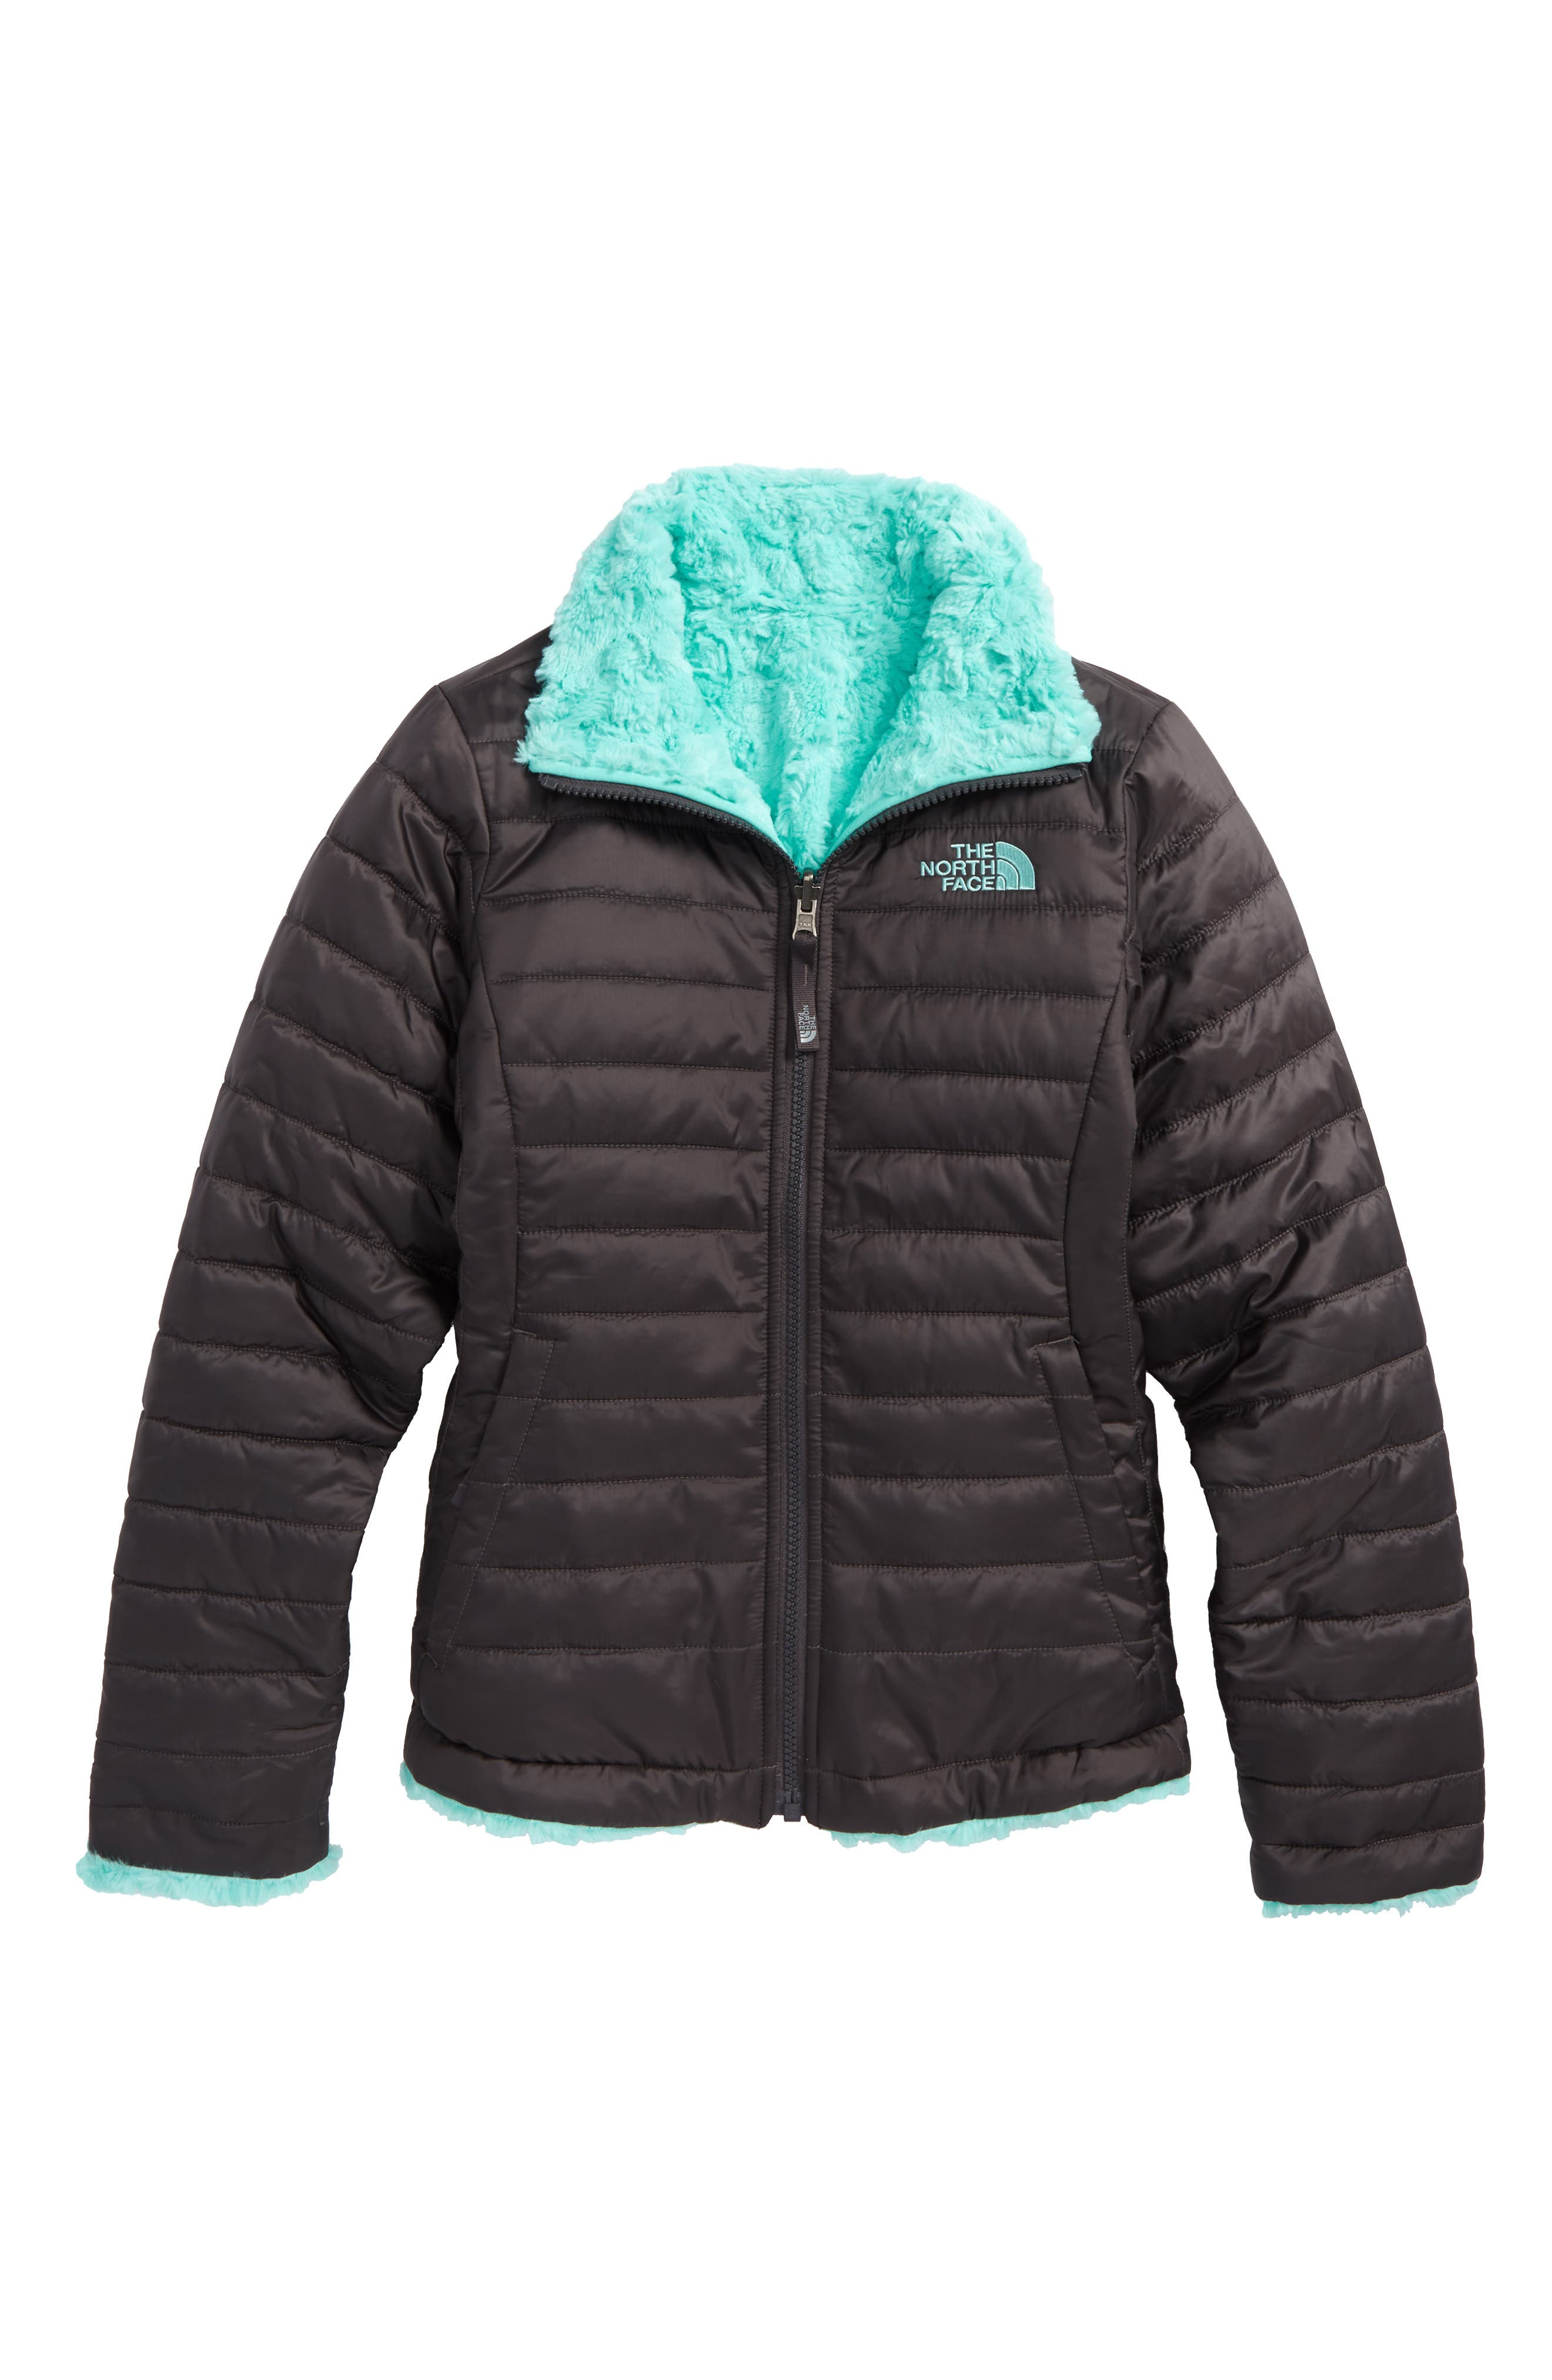 Mossbud Swirl Reversible Water Repellent Jacket,                             Main thumbnail 1, color,                             GRAPHITE GREY/ MINT BLUE